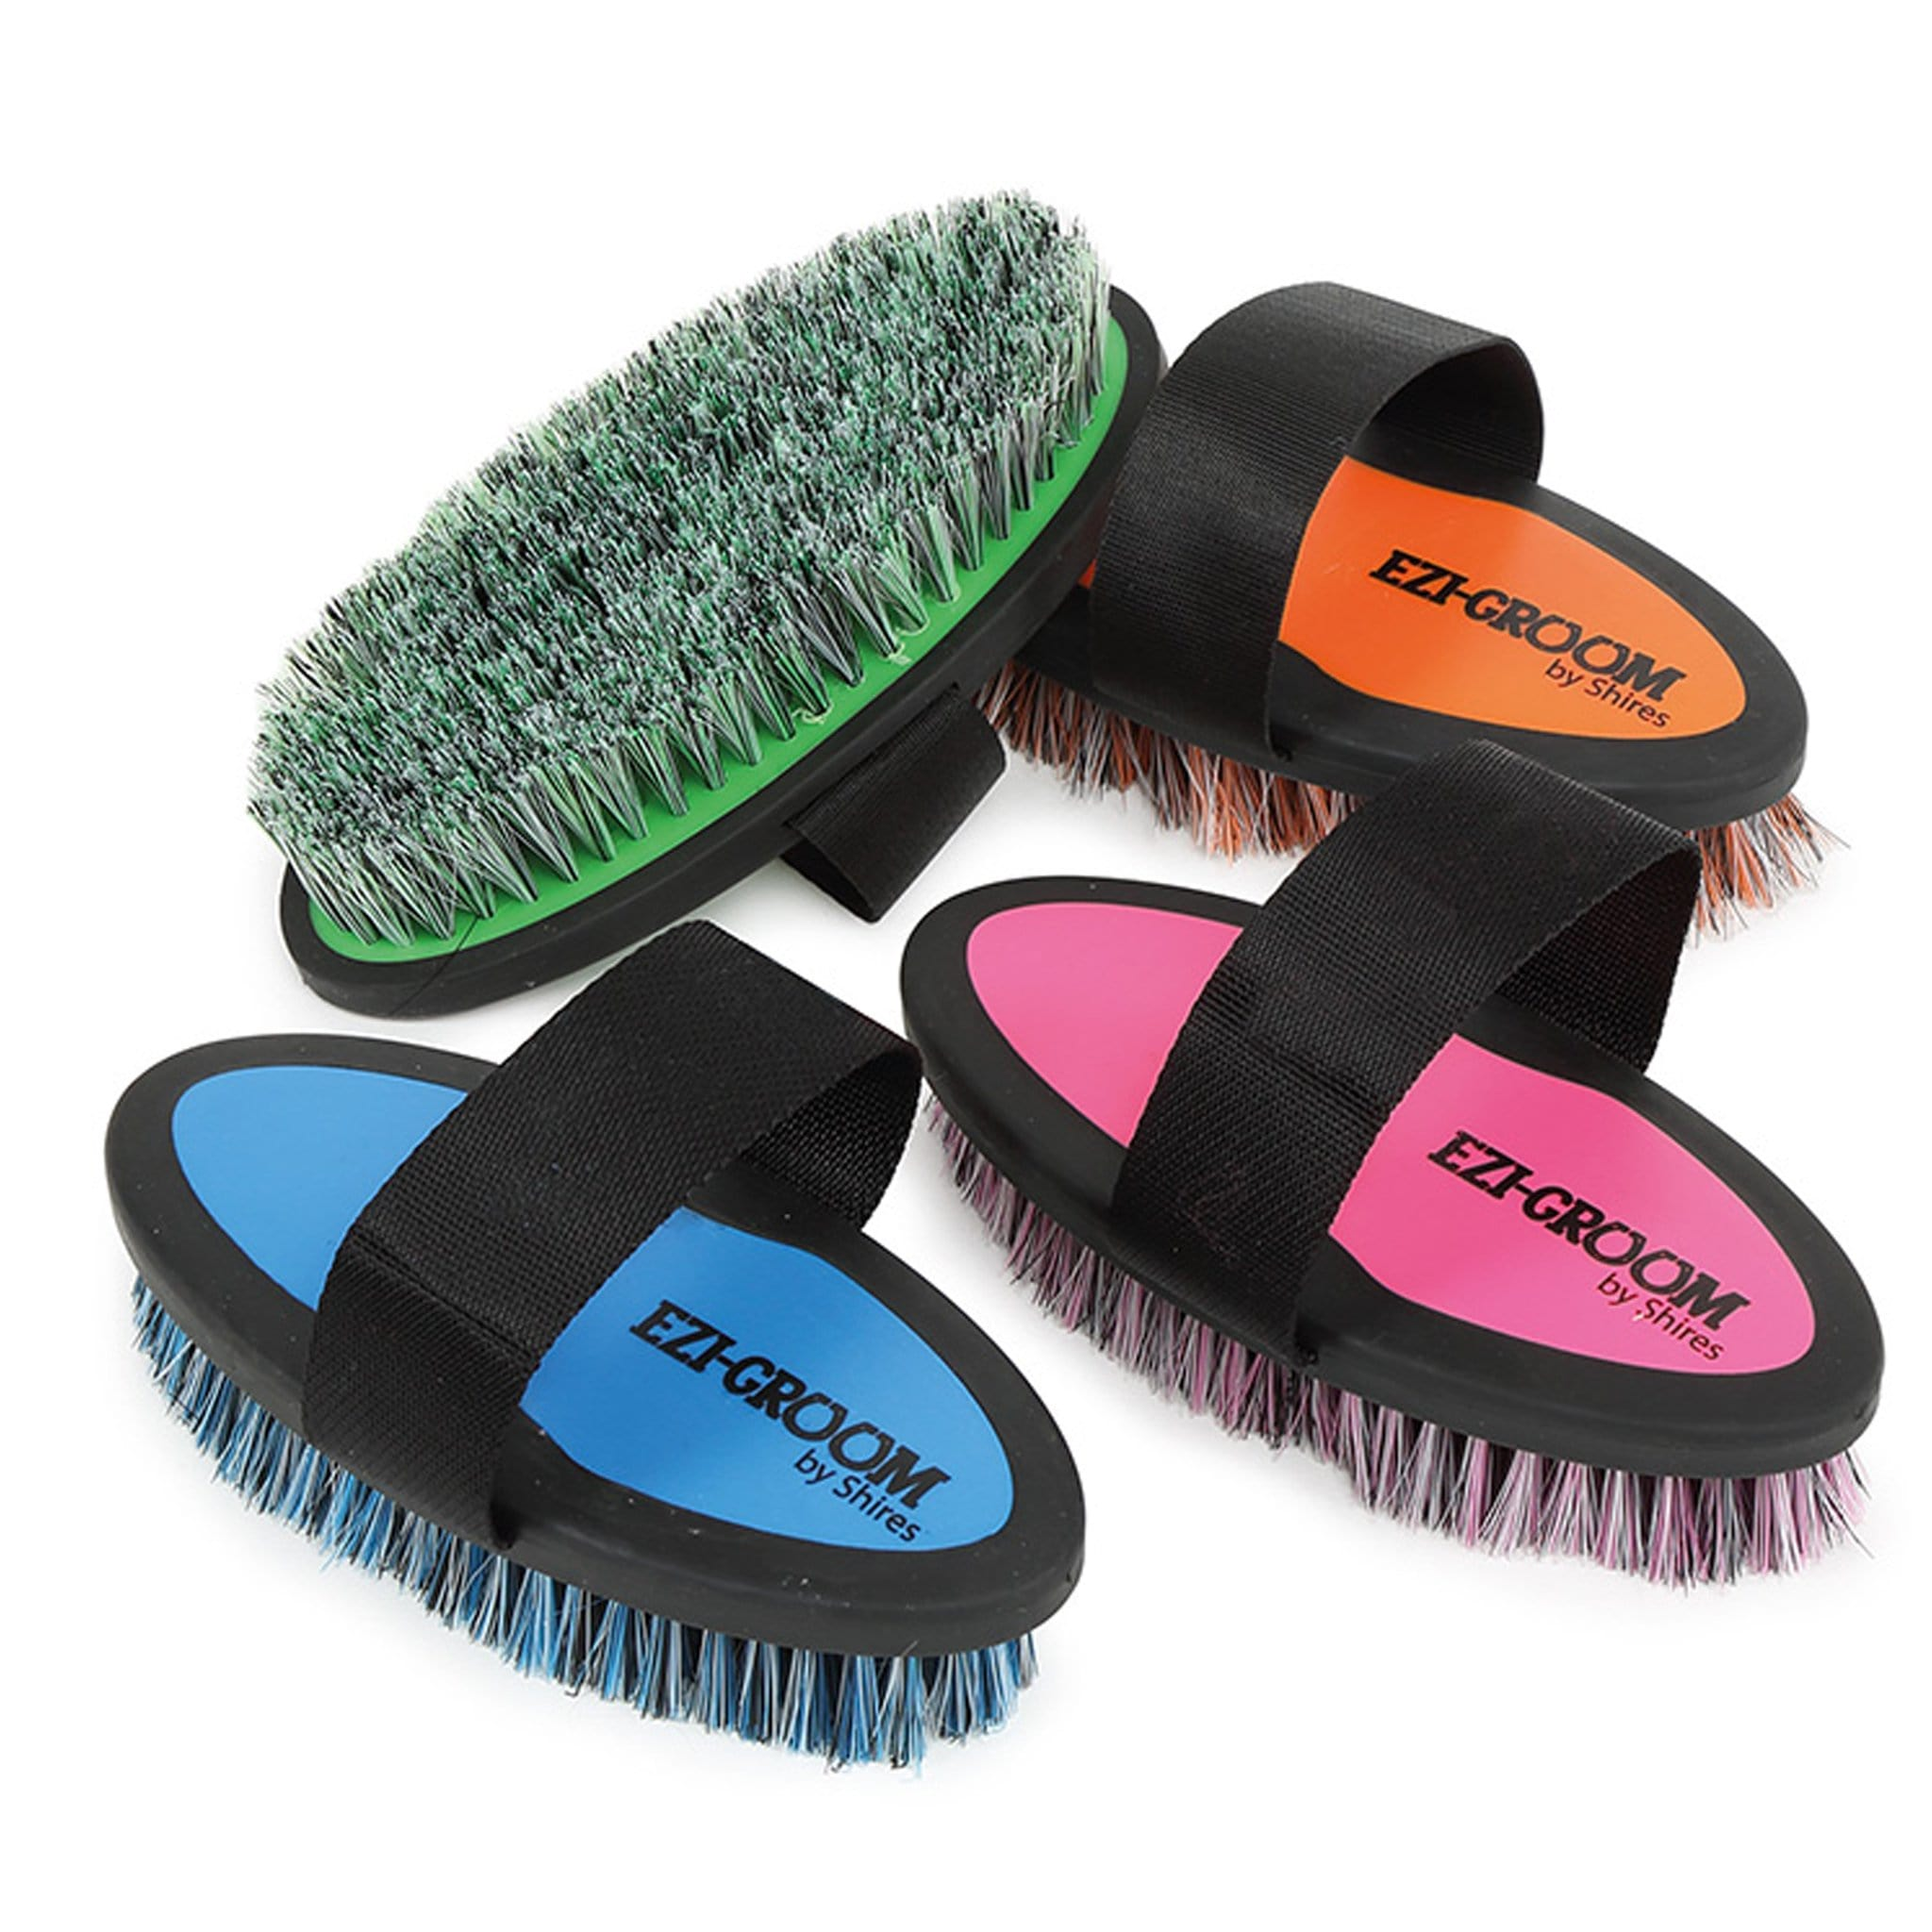 EZI-GROOM Grip Body Brush All Colours 1405